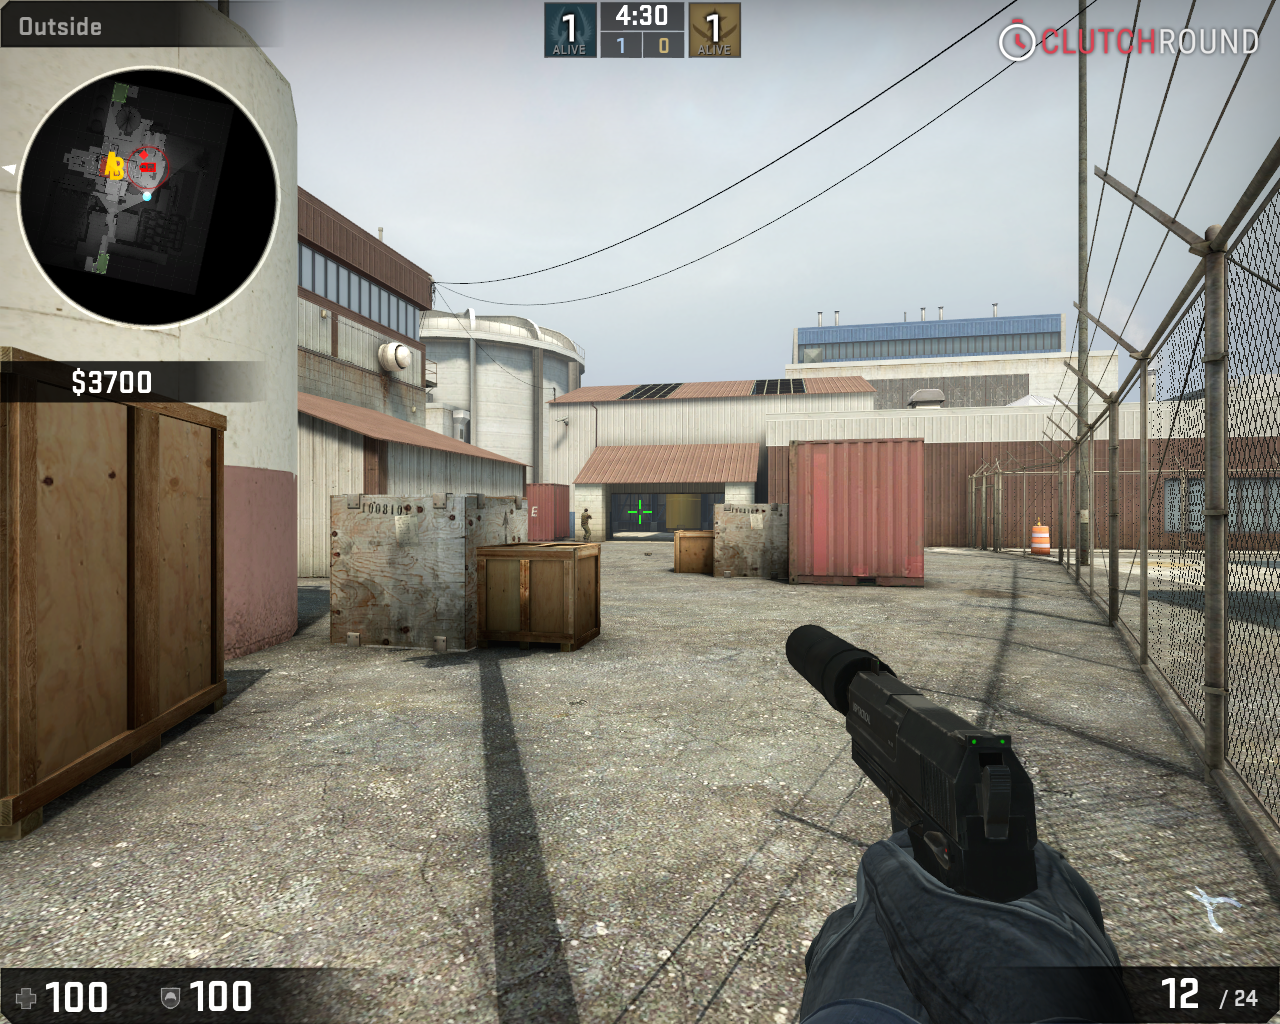 clutchround com - CS:GO Video settings and Tweaking Guide